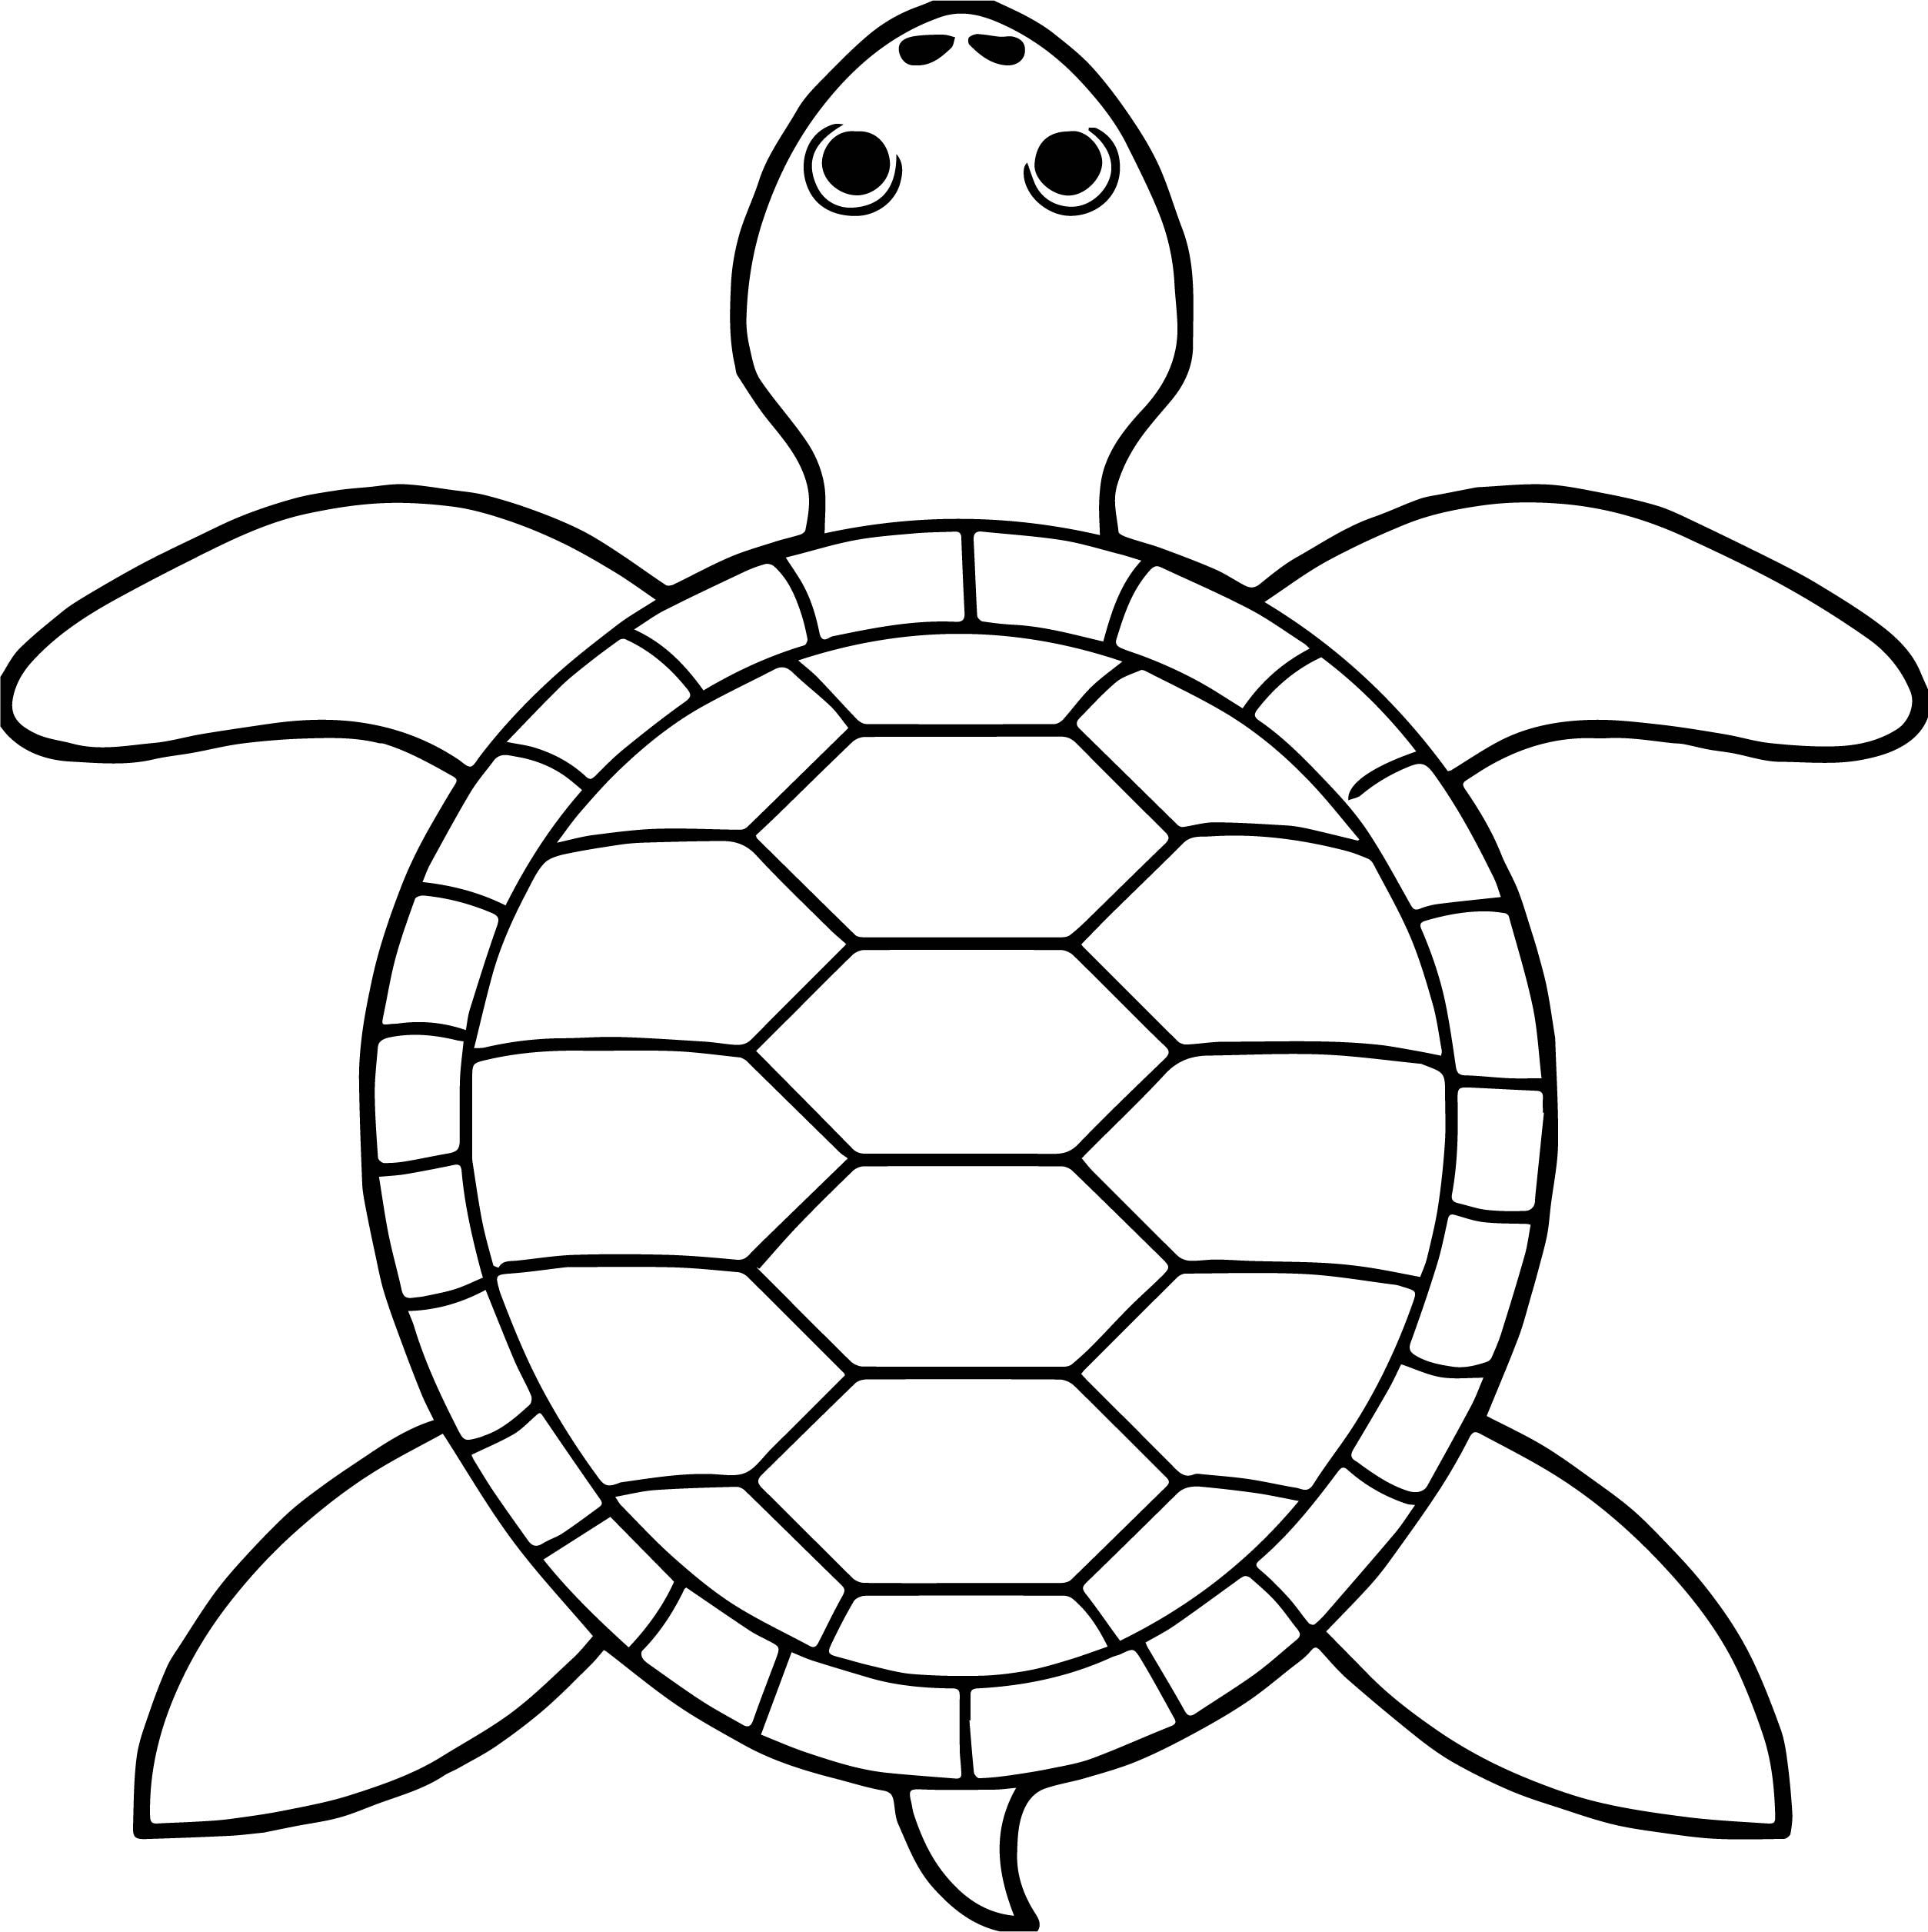 Awesome Tortoise Turtle Top View Coloring Pages Coloring Pages